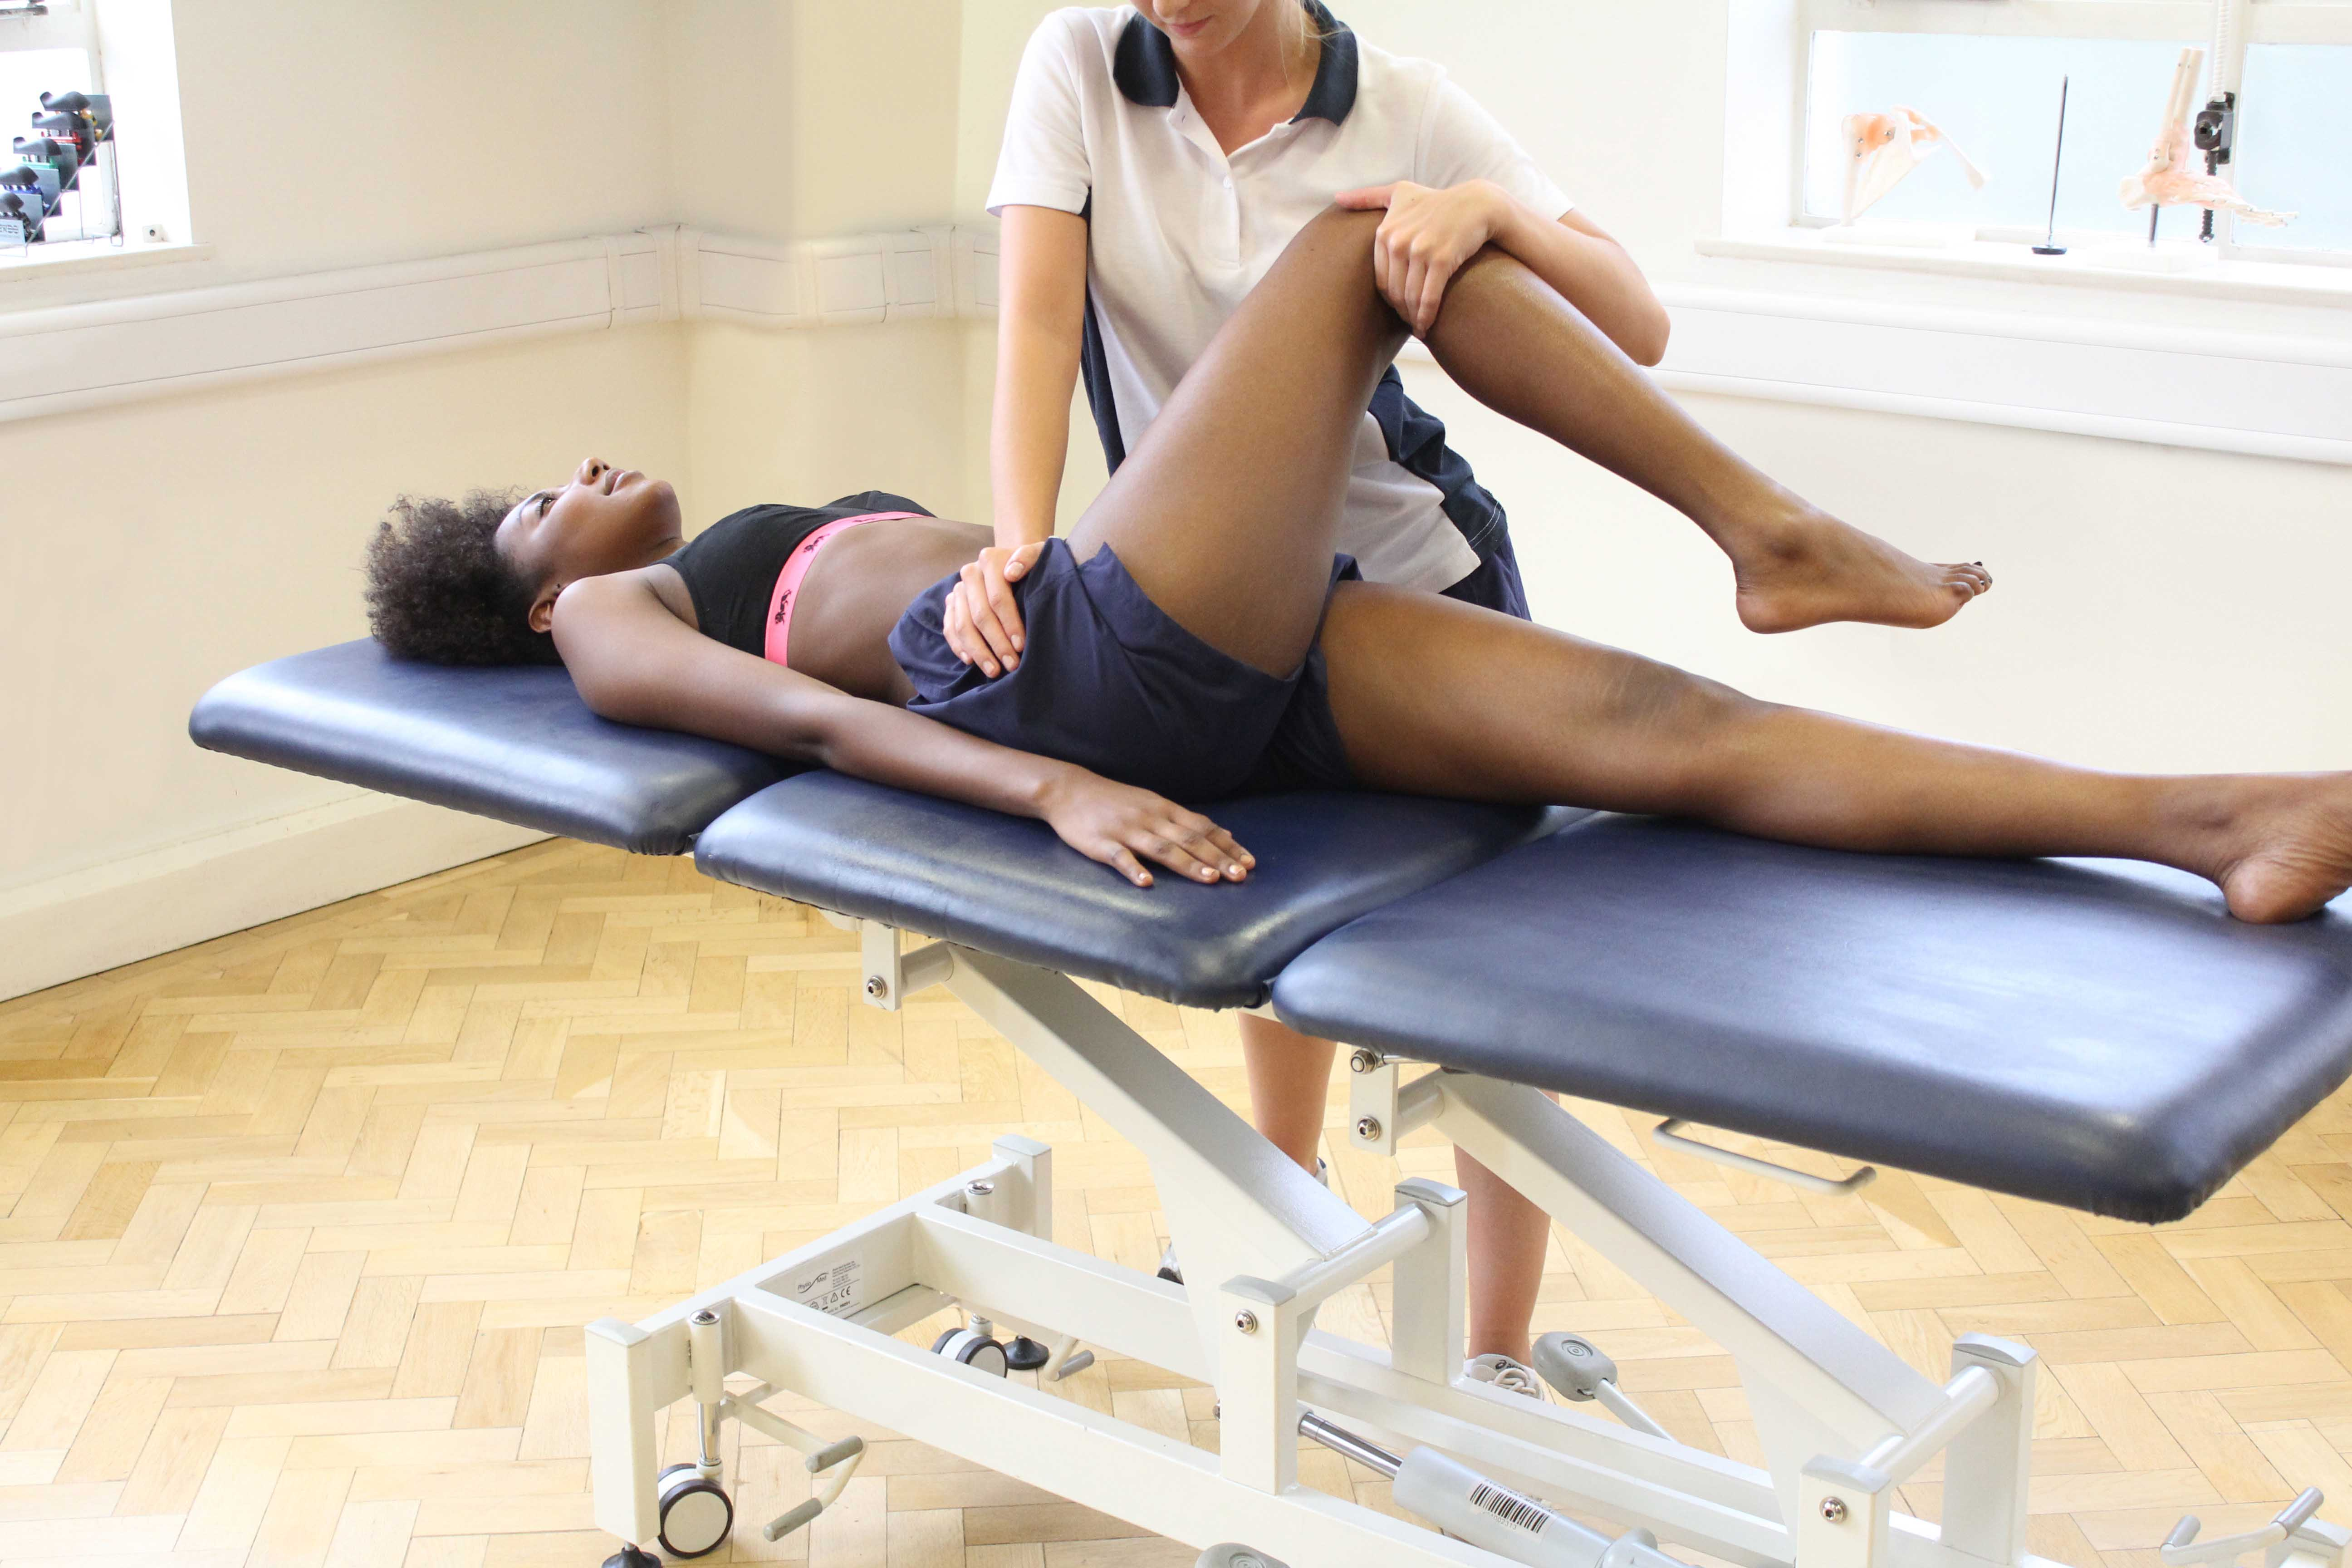 Passive stretch of the hip and pelvic muscles and connective tissues by specialist MSK therapist